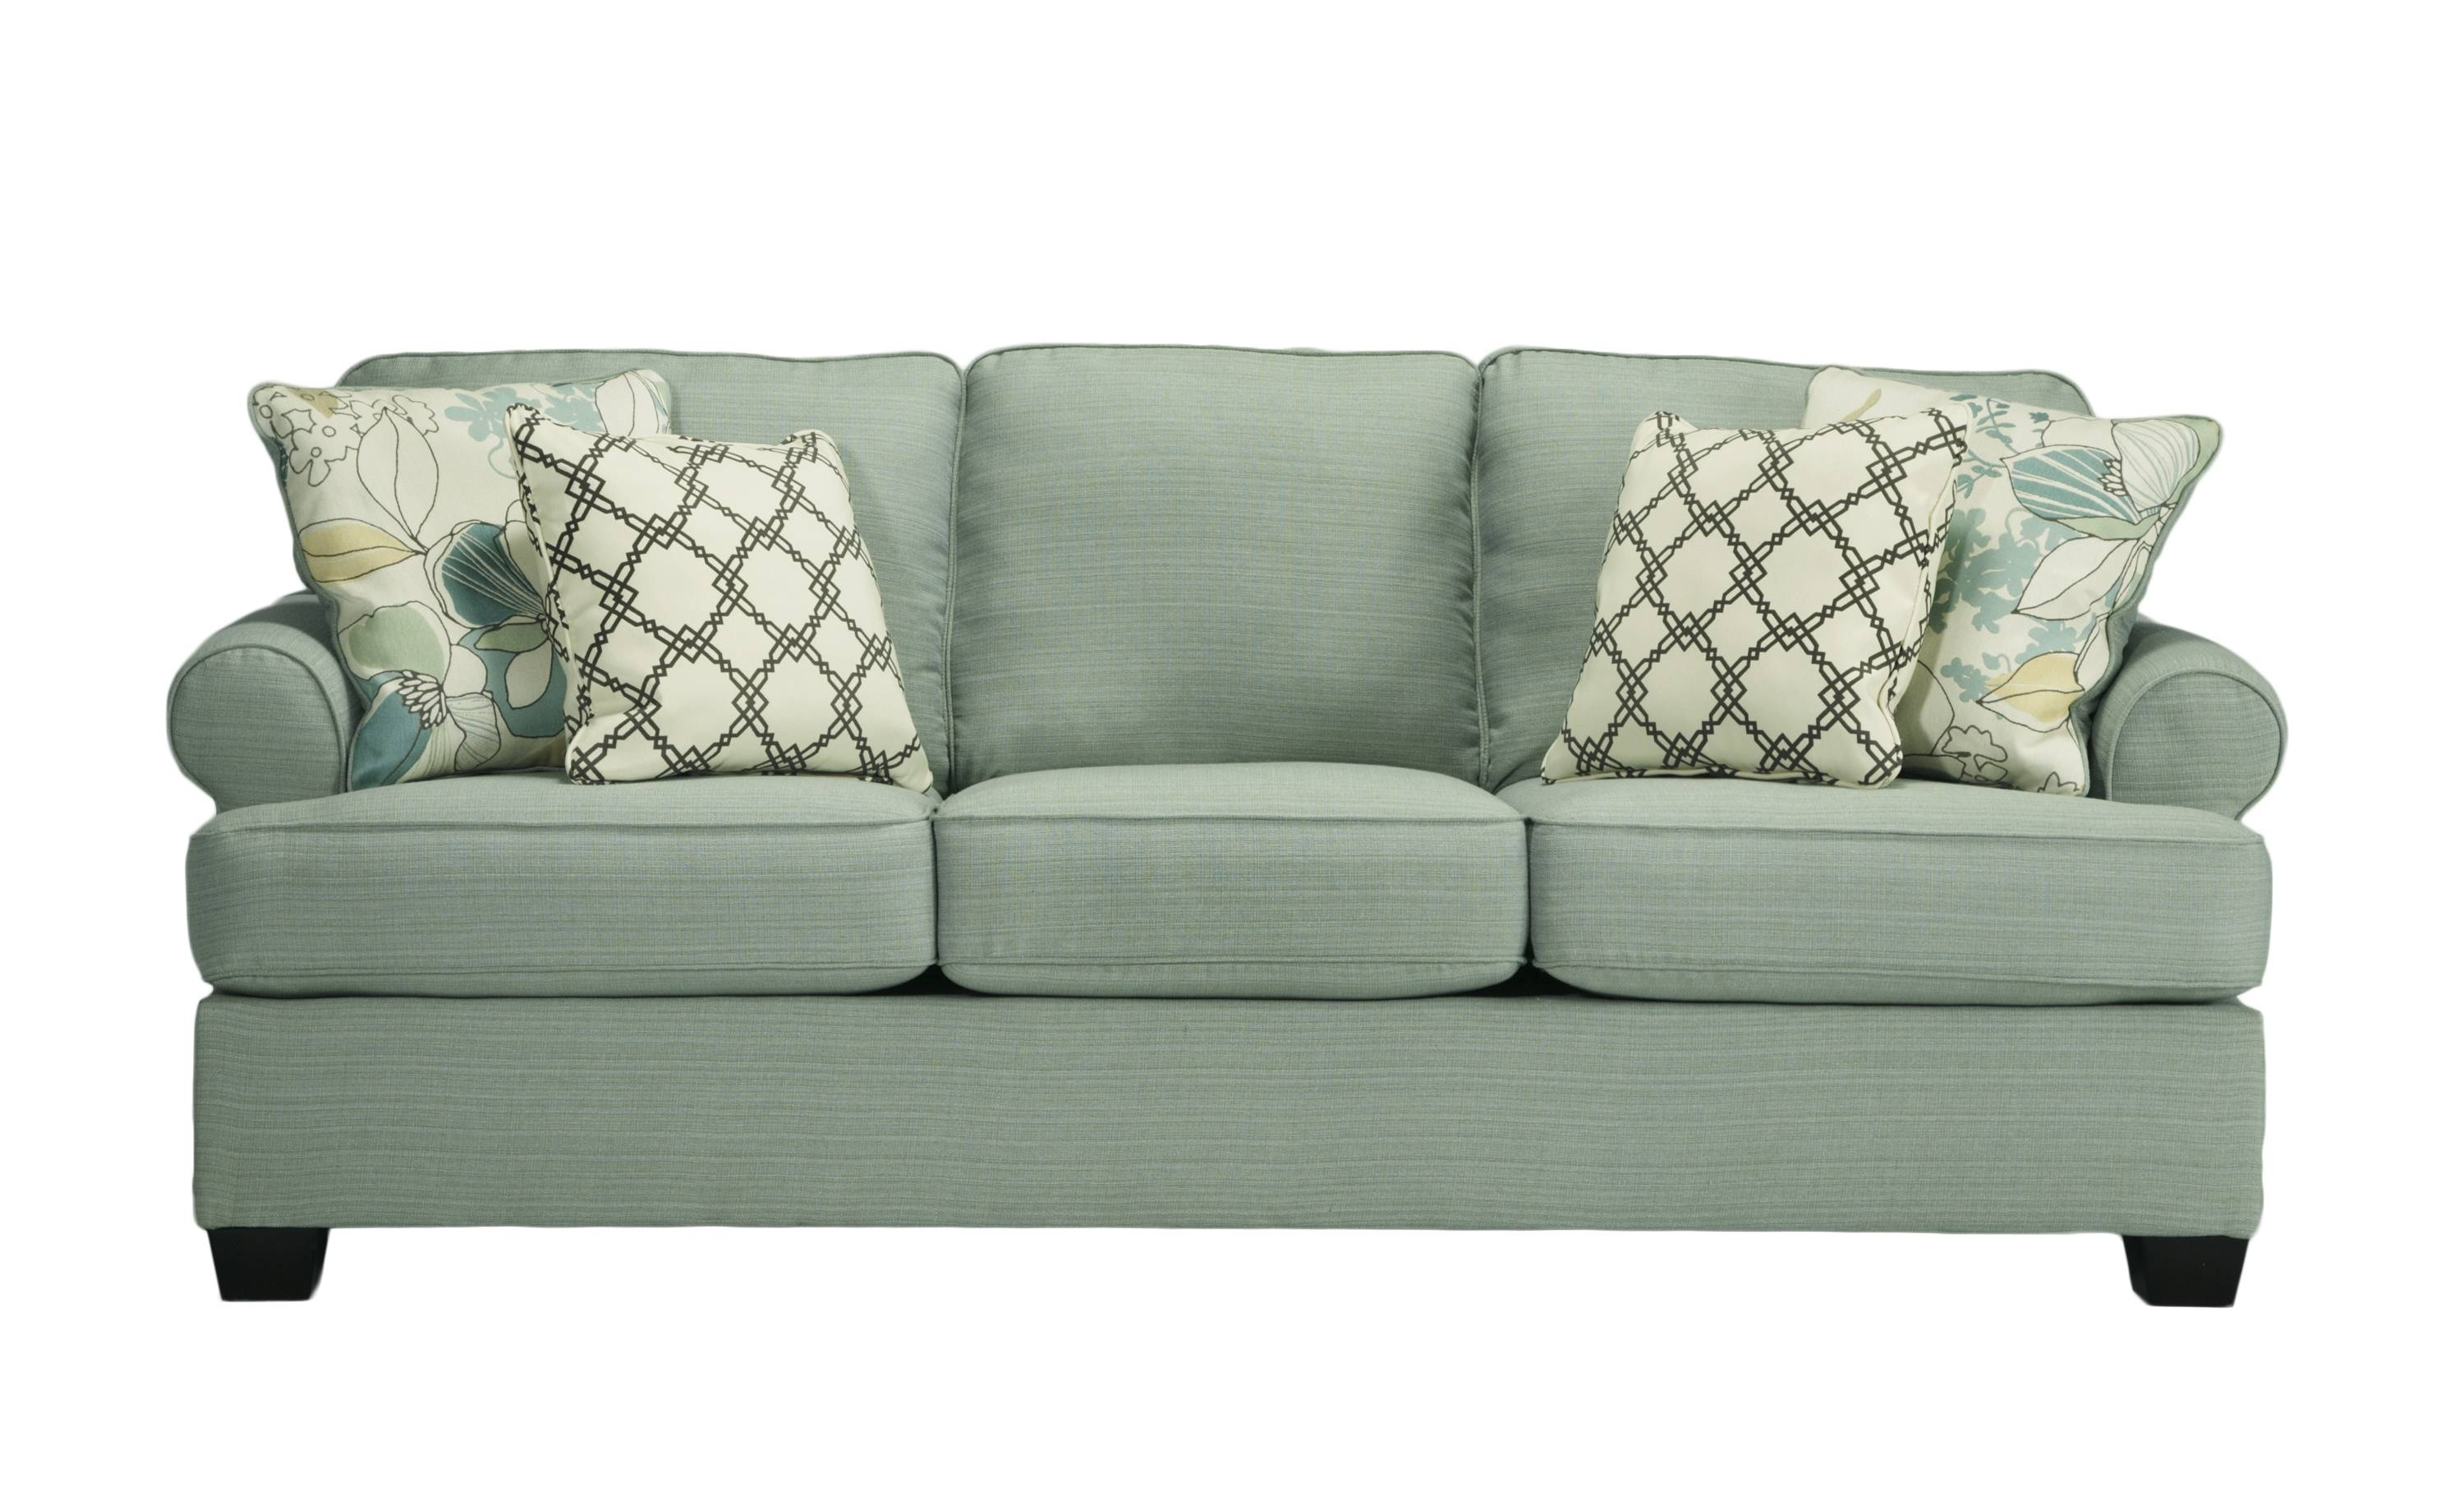 Daystar Contemporary Seafoam Fabric Sofa | Living Rooms | The regarding Seafoam Sofas (Image 6 of 15)